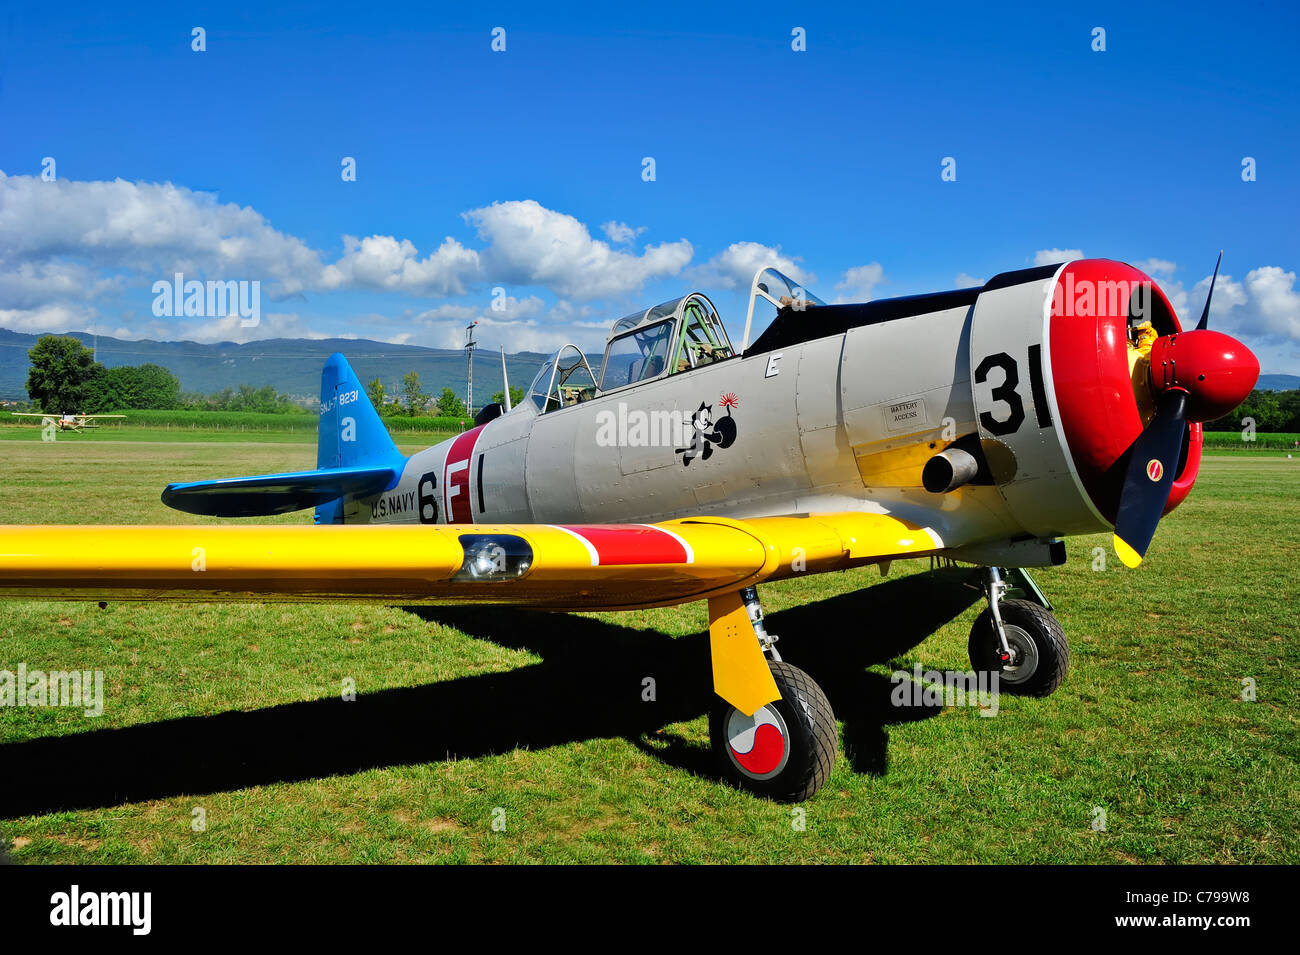 A North American T-6 Texan advanced training aircraft - Stock Image